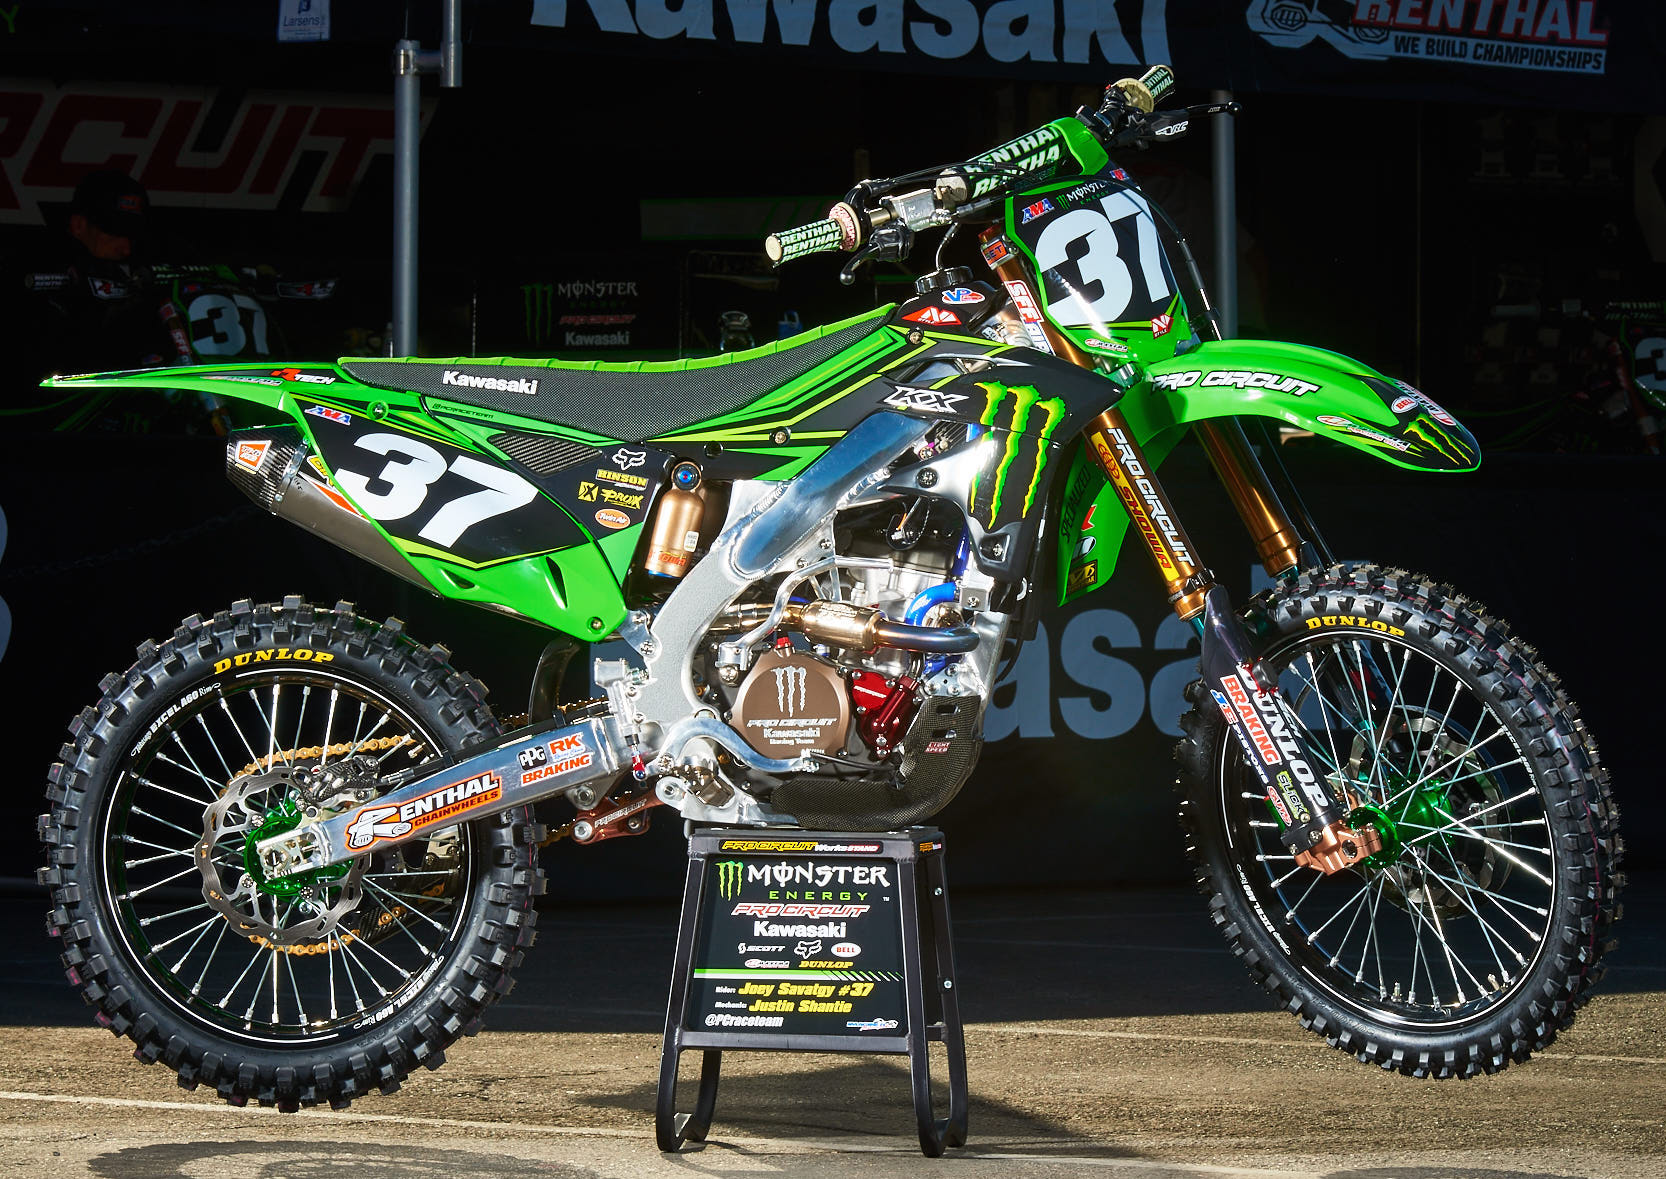 Monster Energy Pro Circuit Kawasaki Team Ready For The